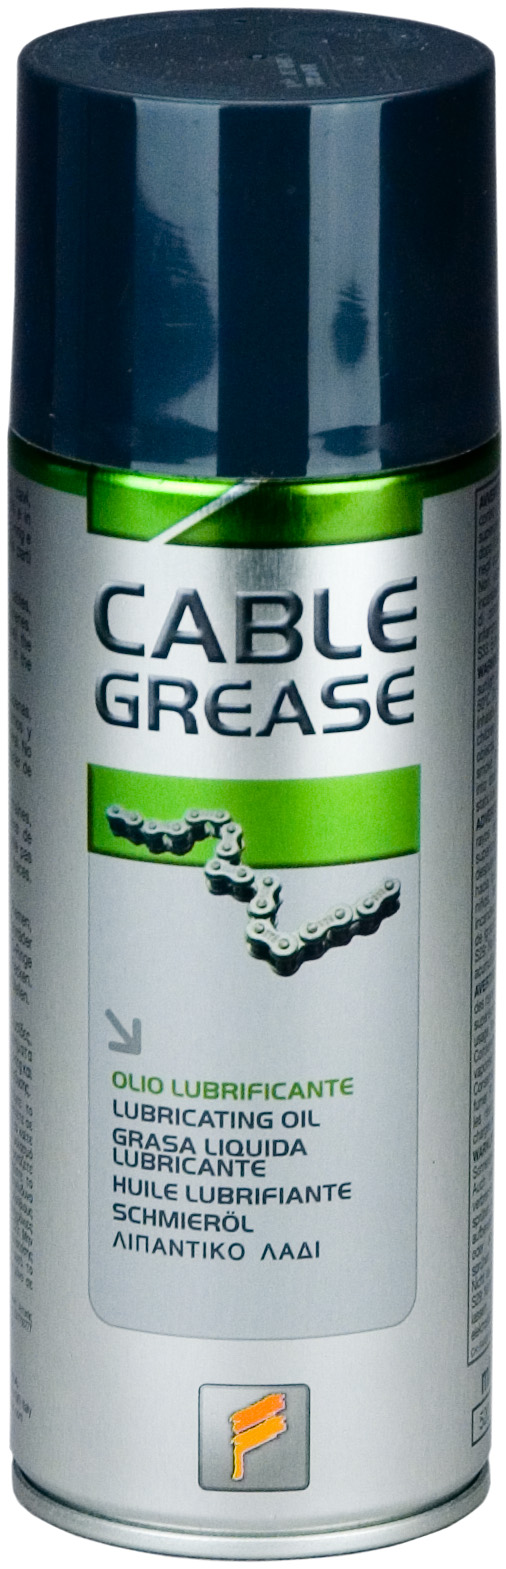 CABLE GREASE - 400 ml